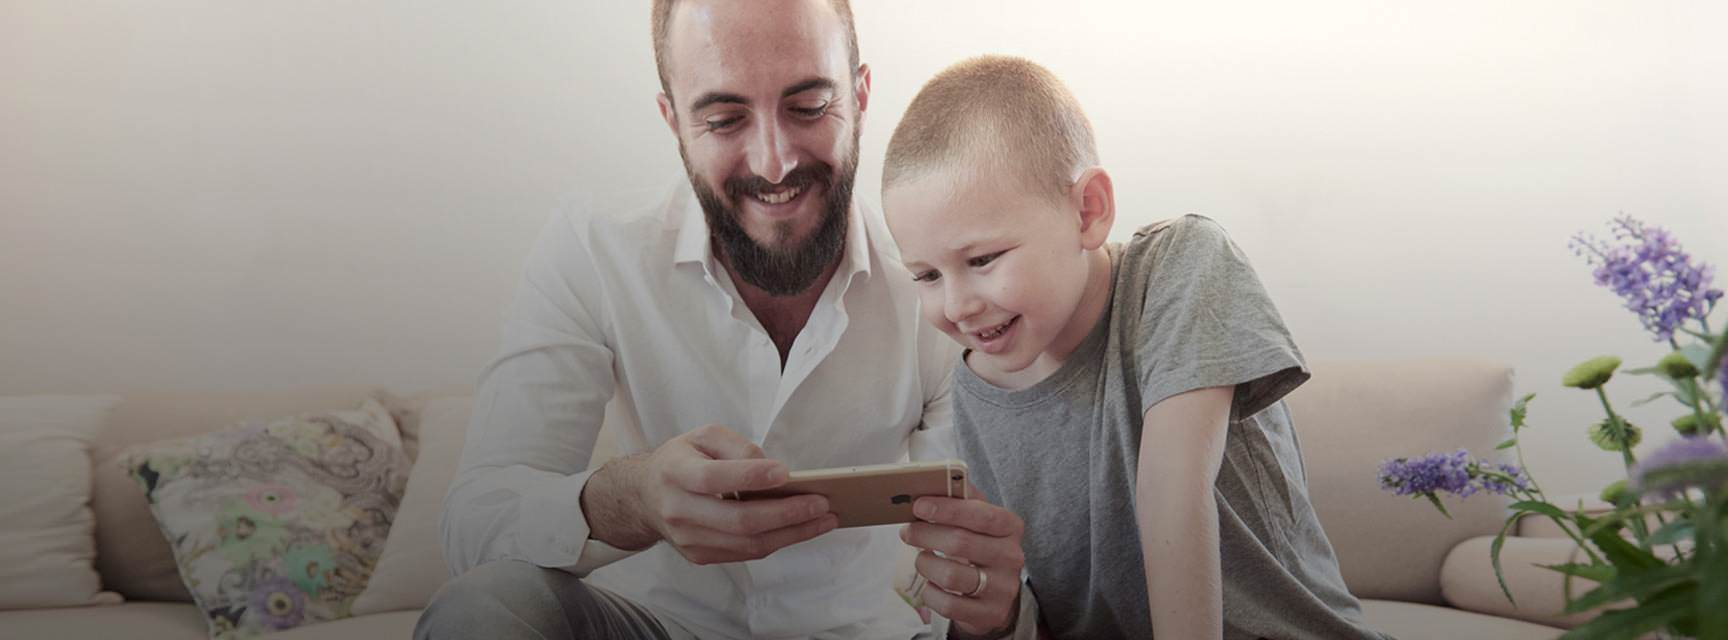 Father and son, watching together scanned photos on a smartphone using the Photomyne app